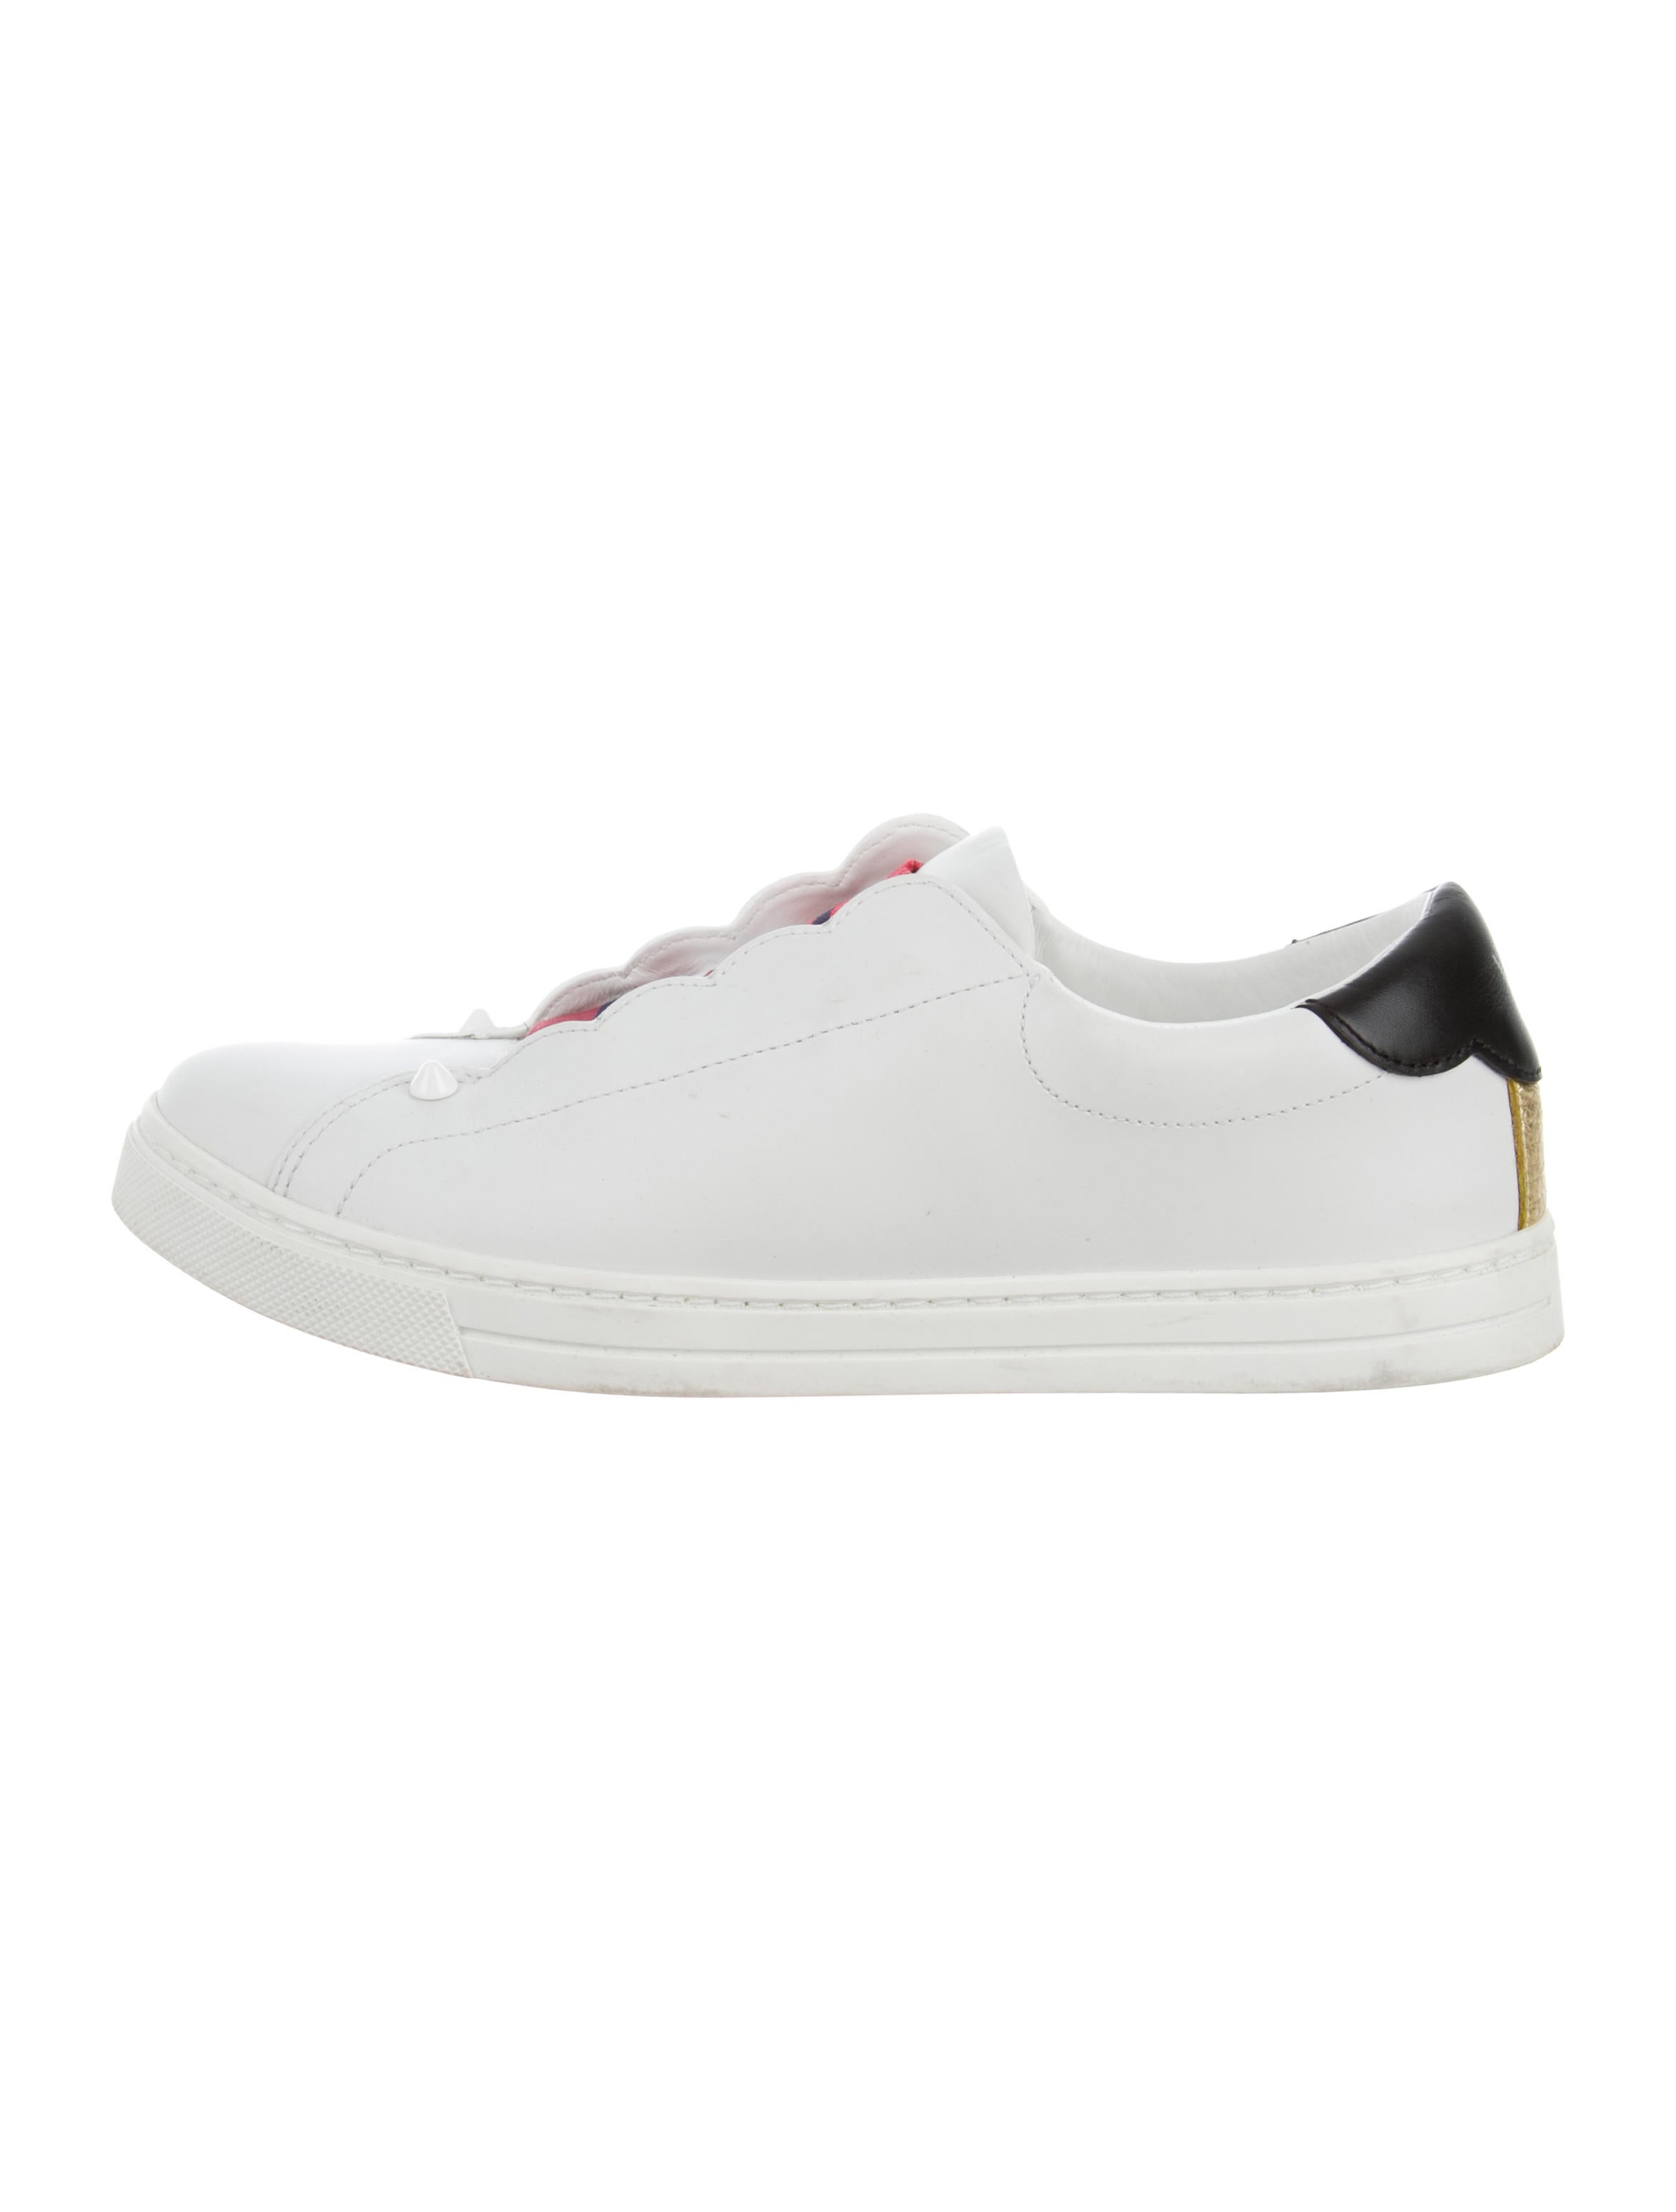 Scalloped Skate Sneakers - Shoes